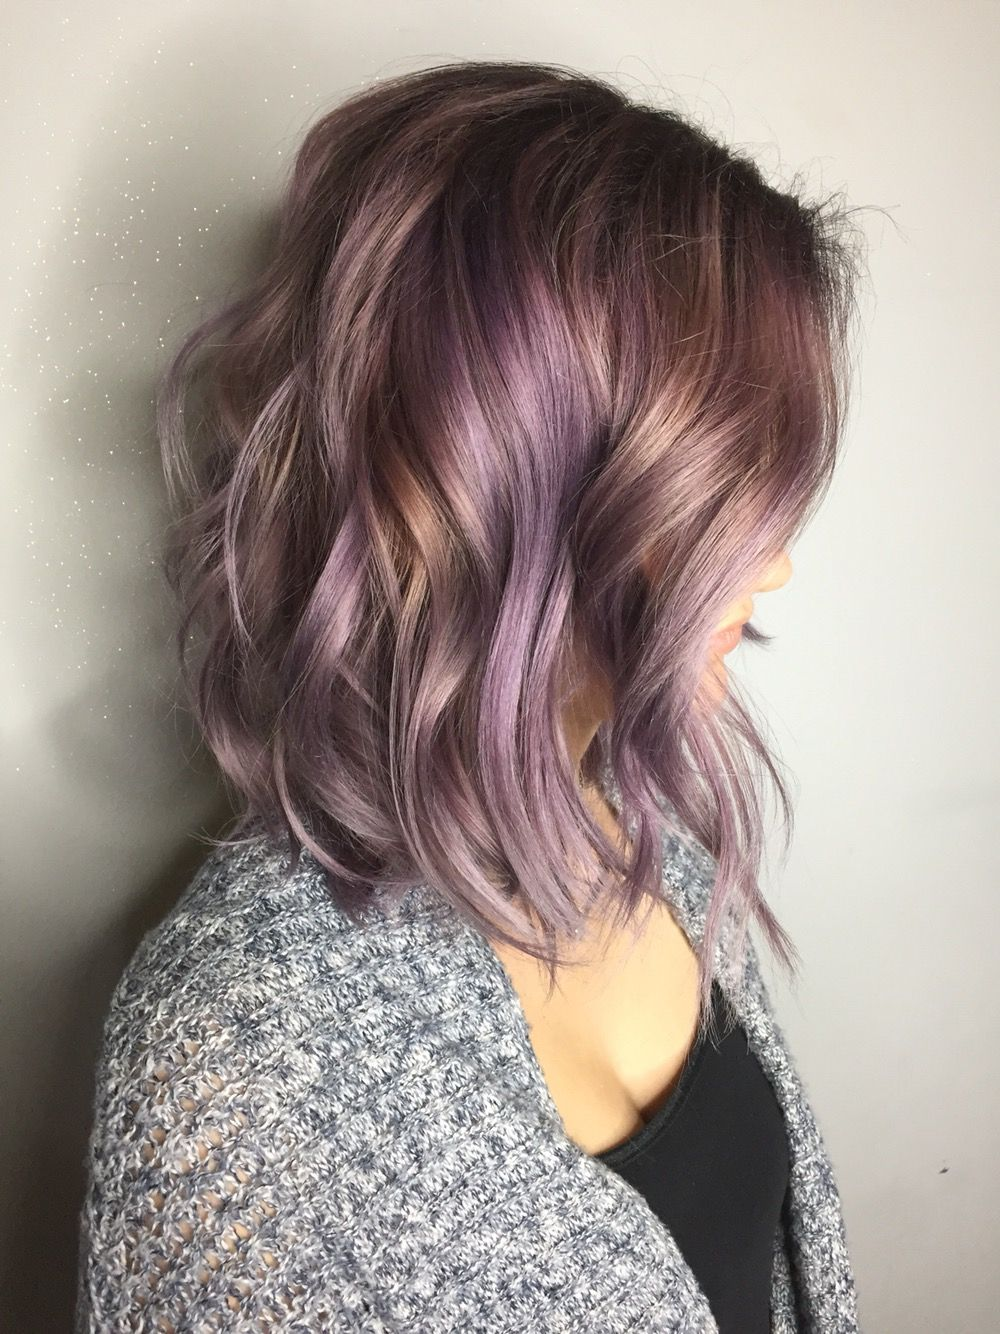 These 25 Purple Hairstyles Will Make You Want To Dye Your Hair Lilac Hair Lavender Hair Colors Lavender Hair